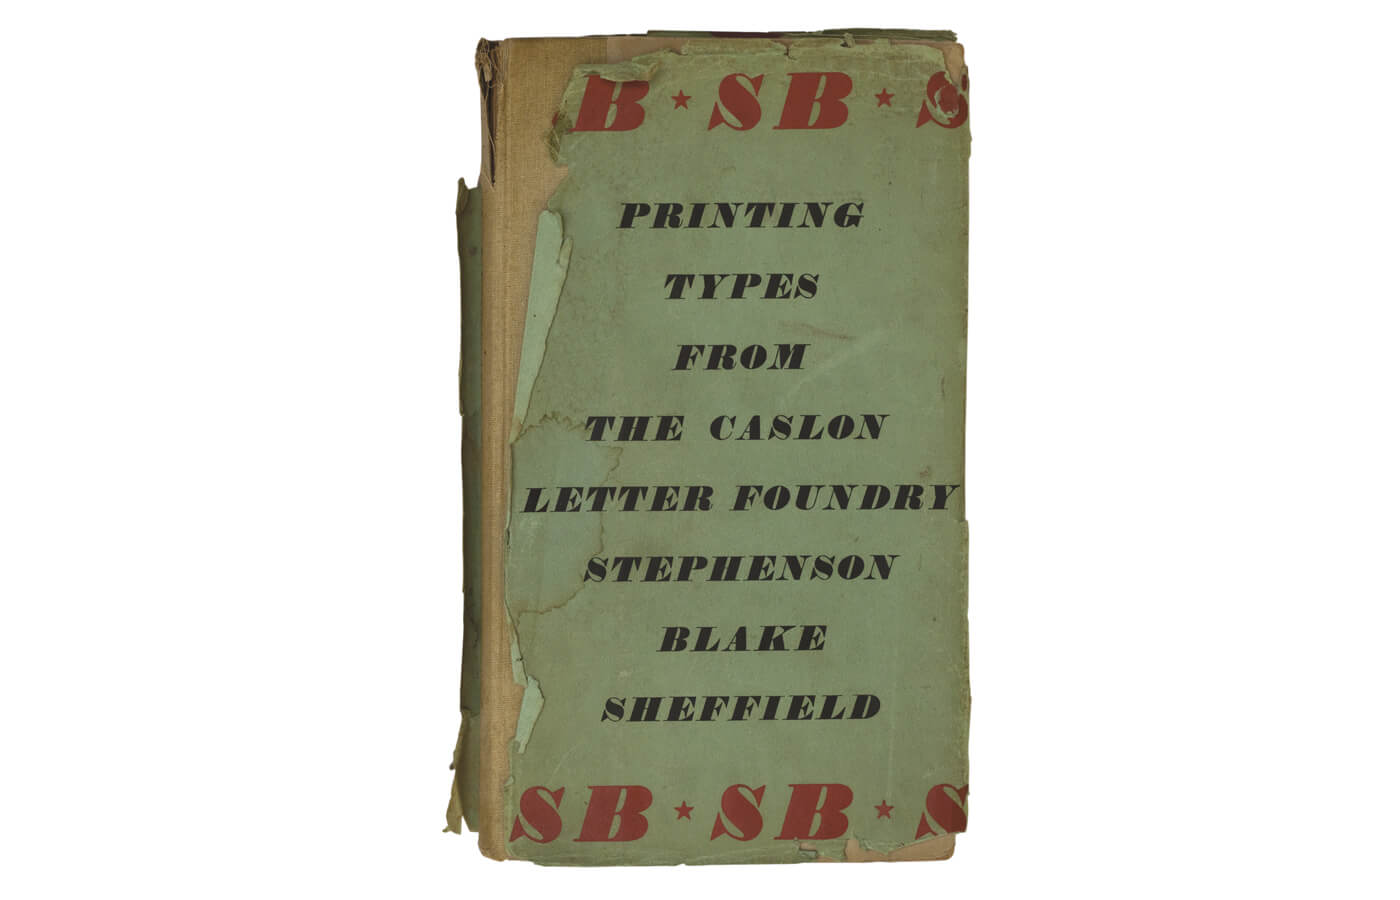 Specimens of Printing Types from Stephenson Blake  1953